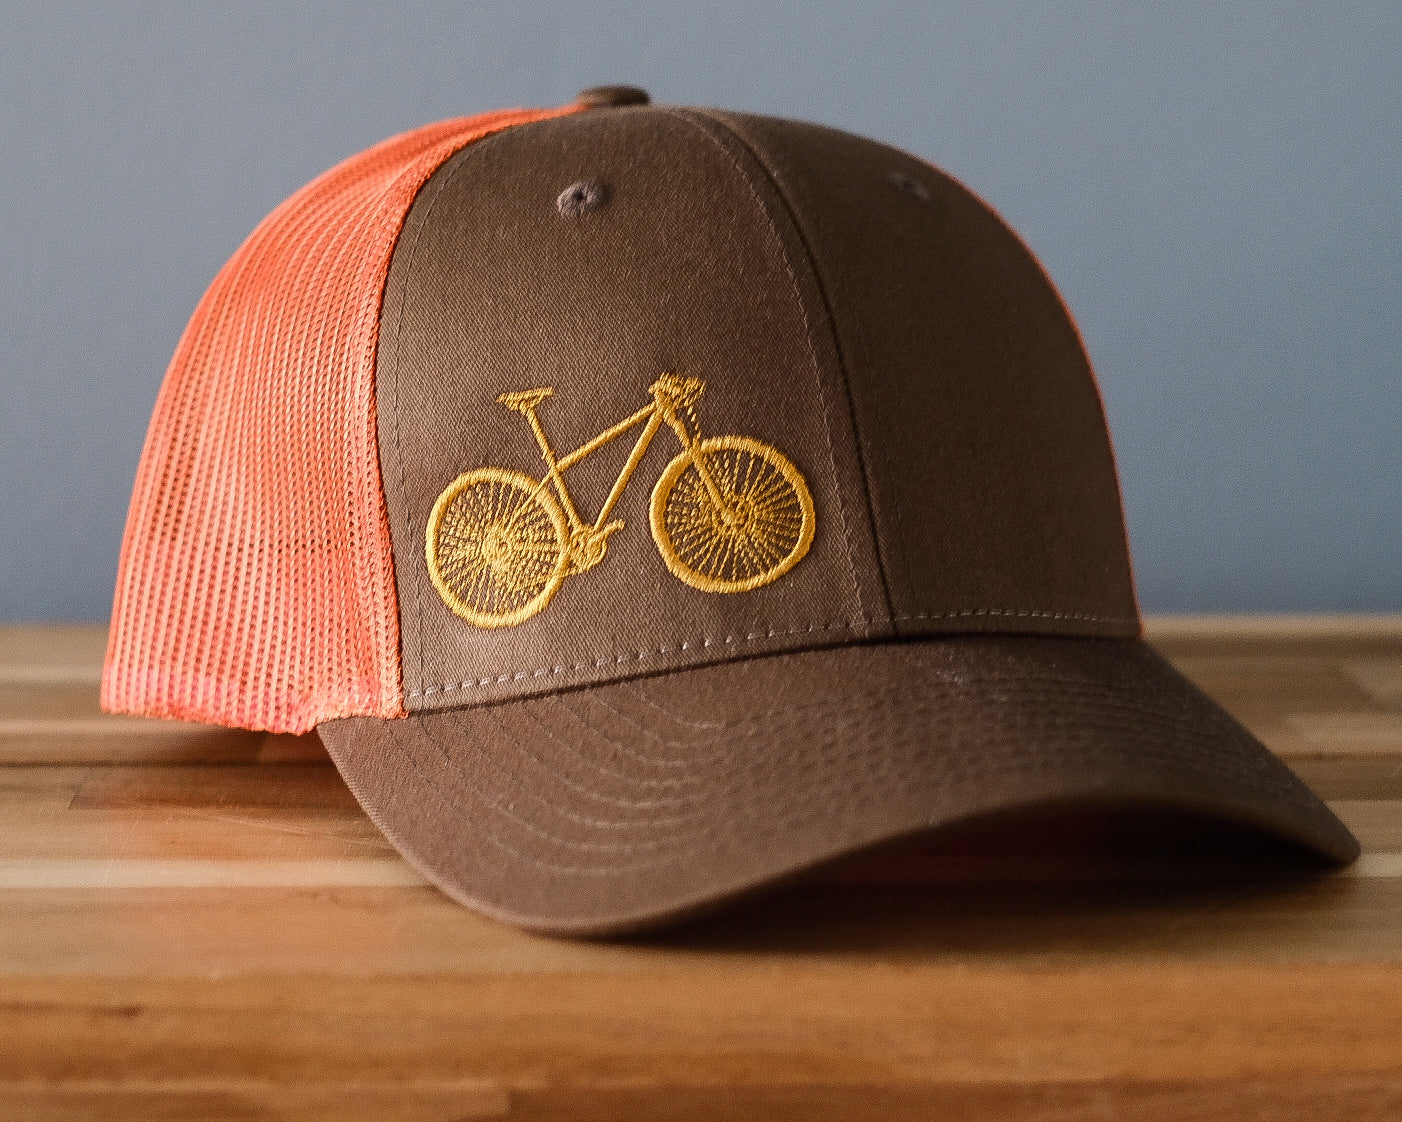 Bicycle Embroidered Trucker Hat - Rust and Loden with Goldenrod bike